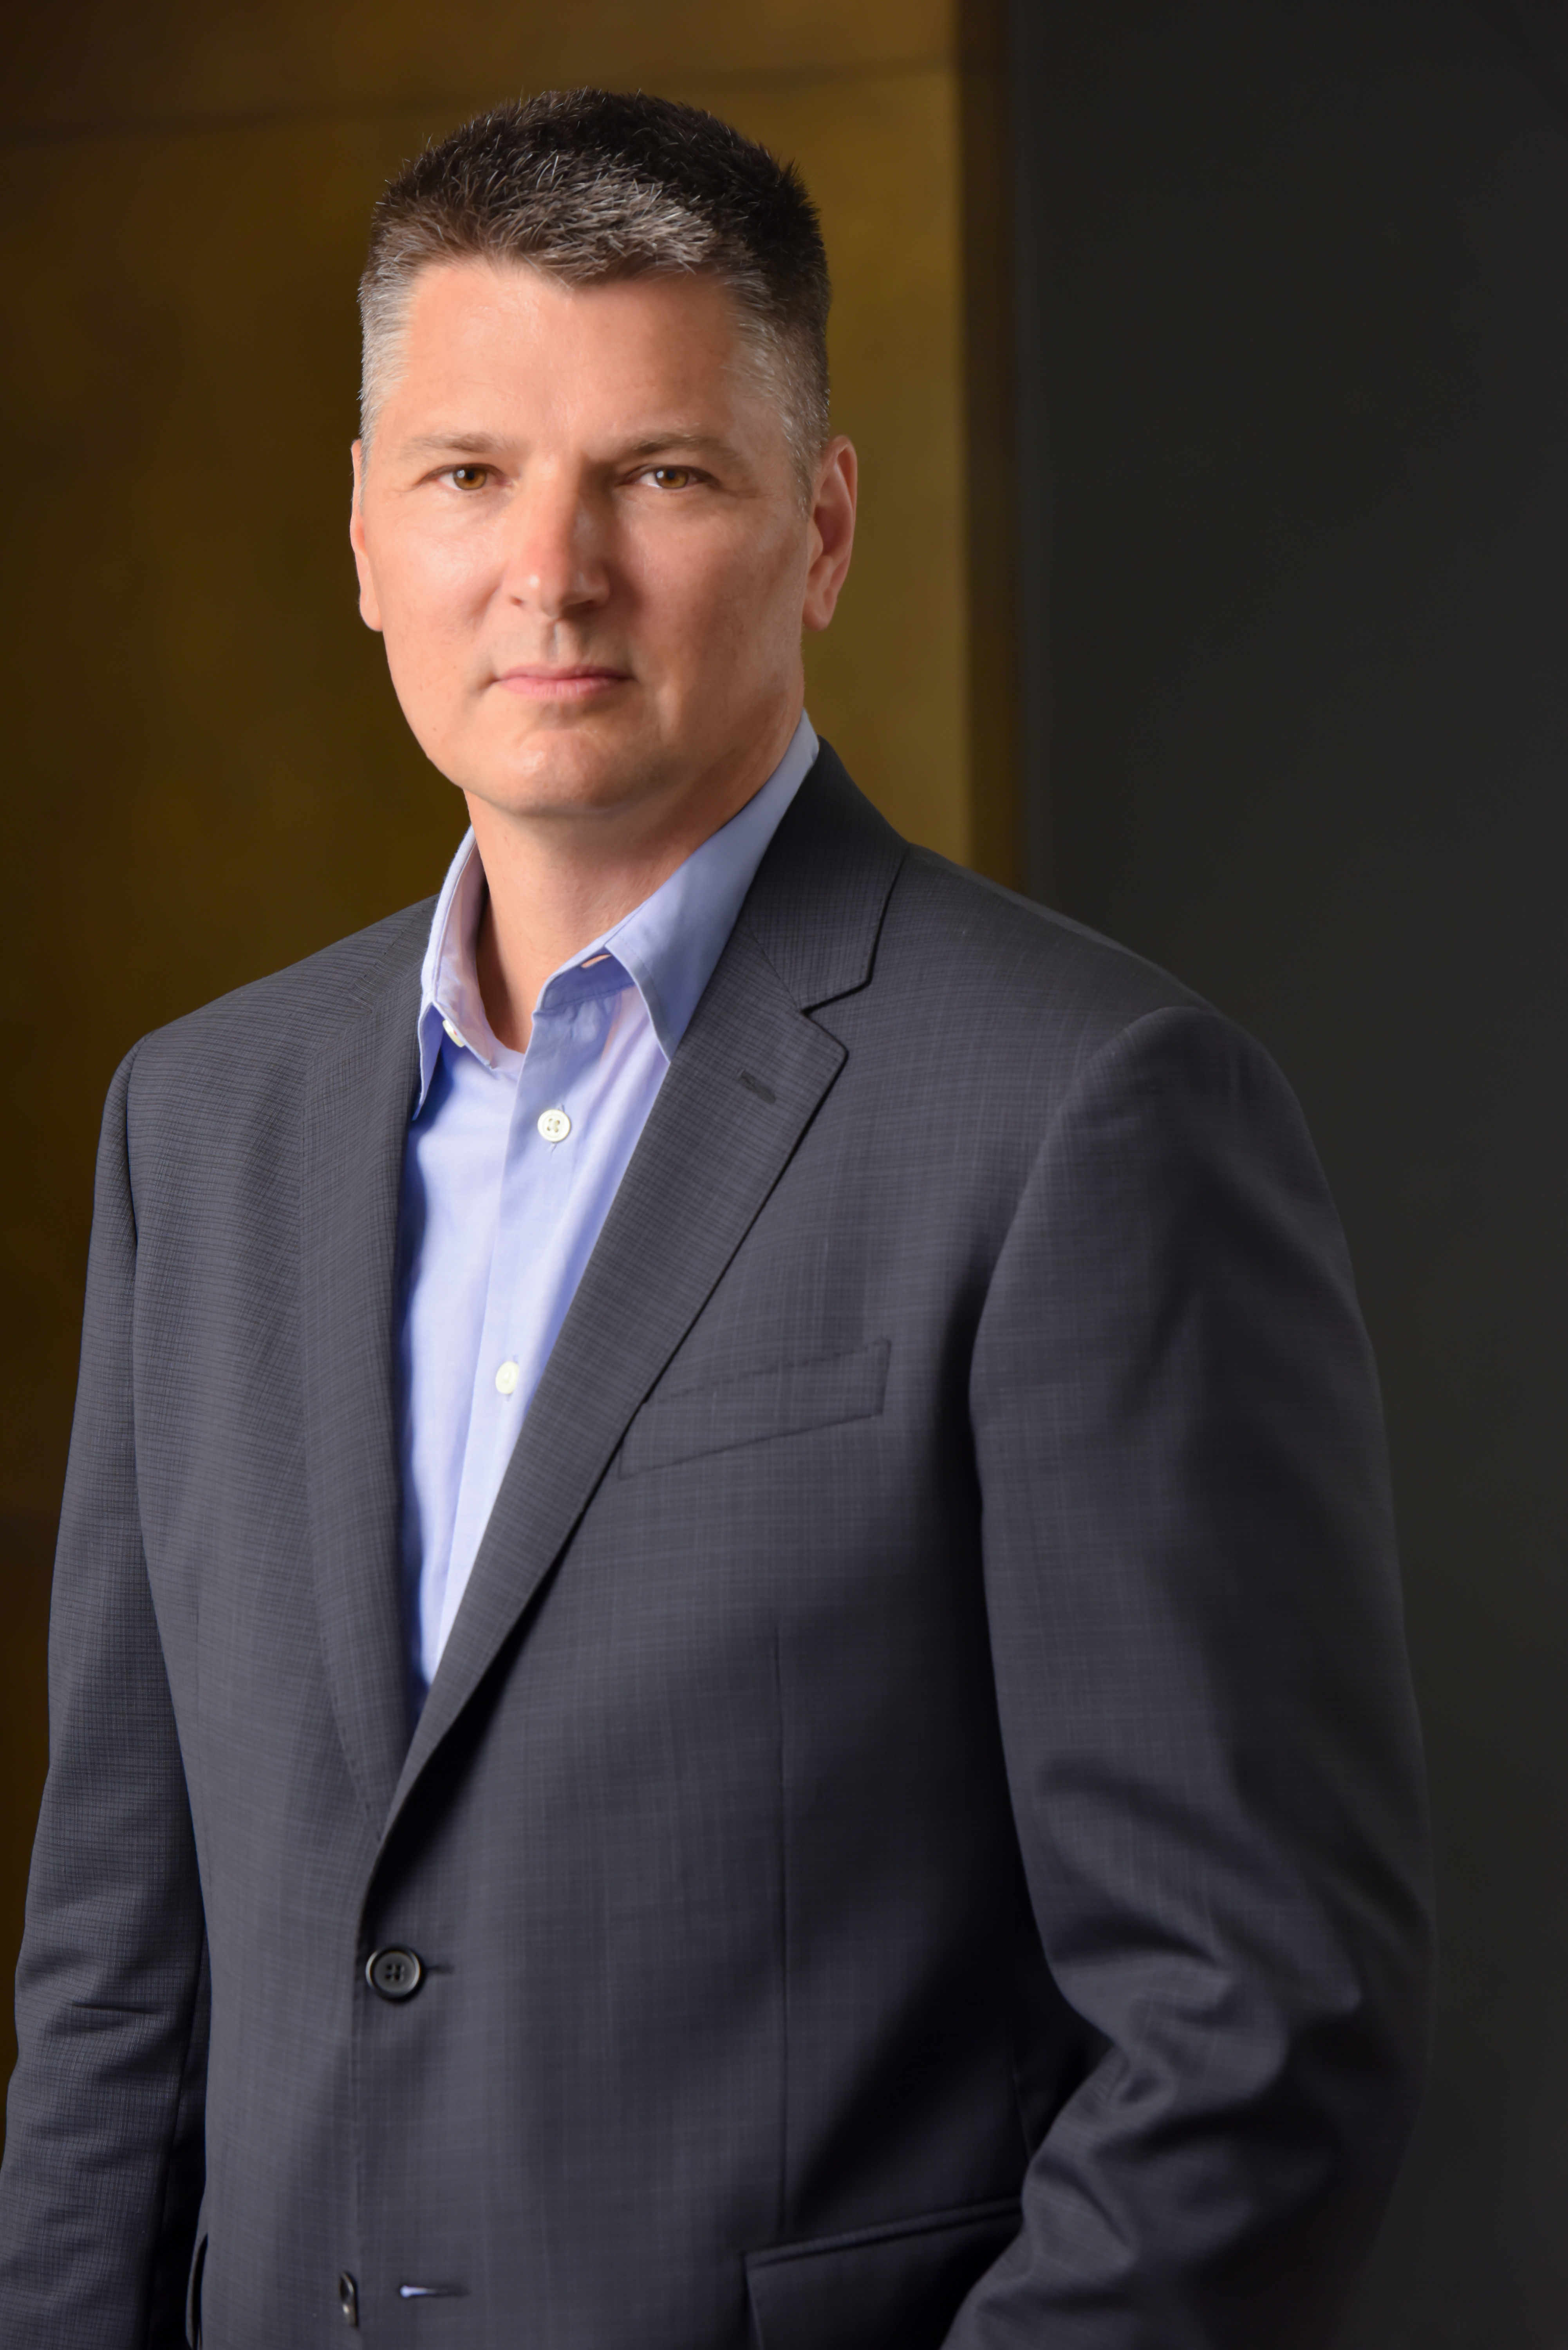 Barnes & Noble appoints Chief Digital Officer, Frederic D. Argir, to lead E-Commerce and NOOK®.